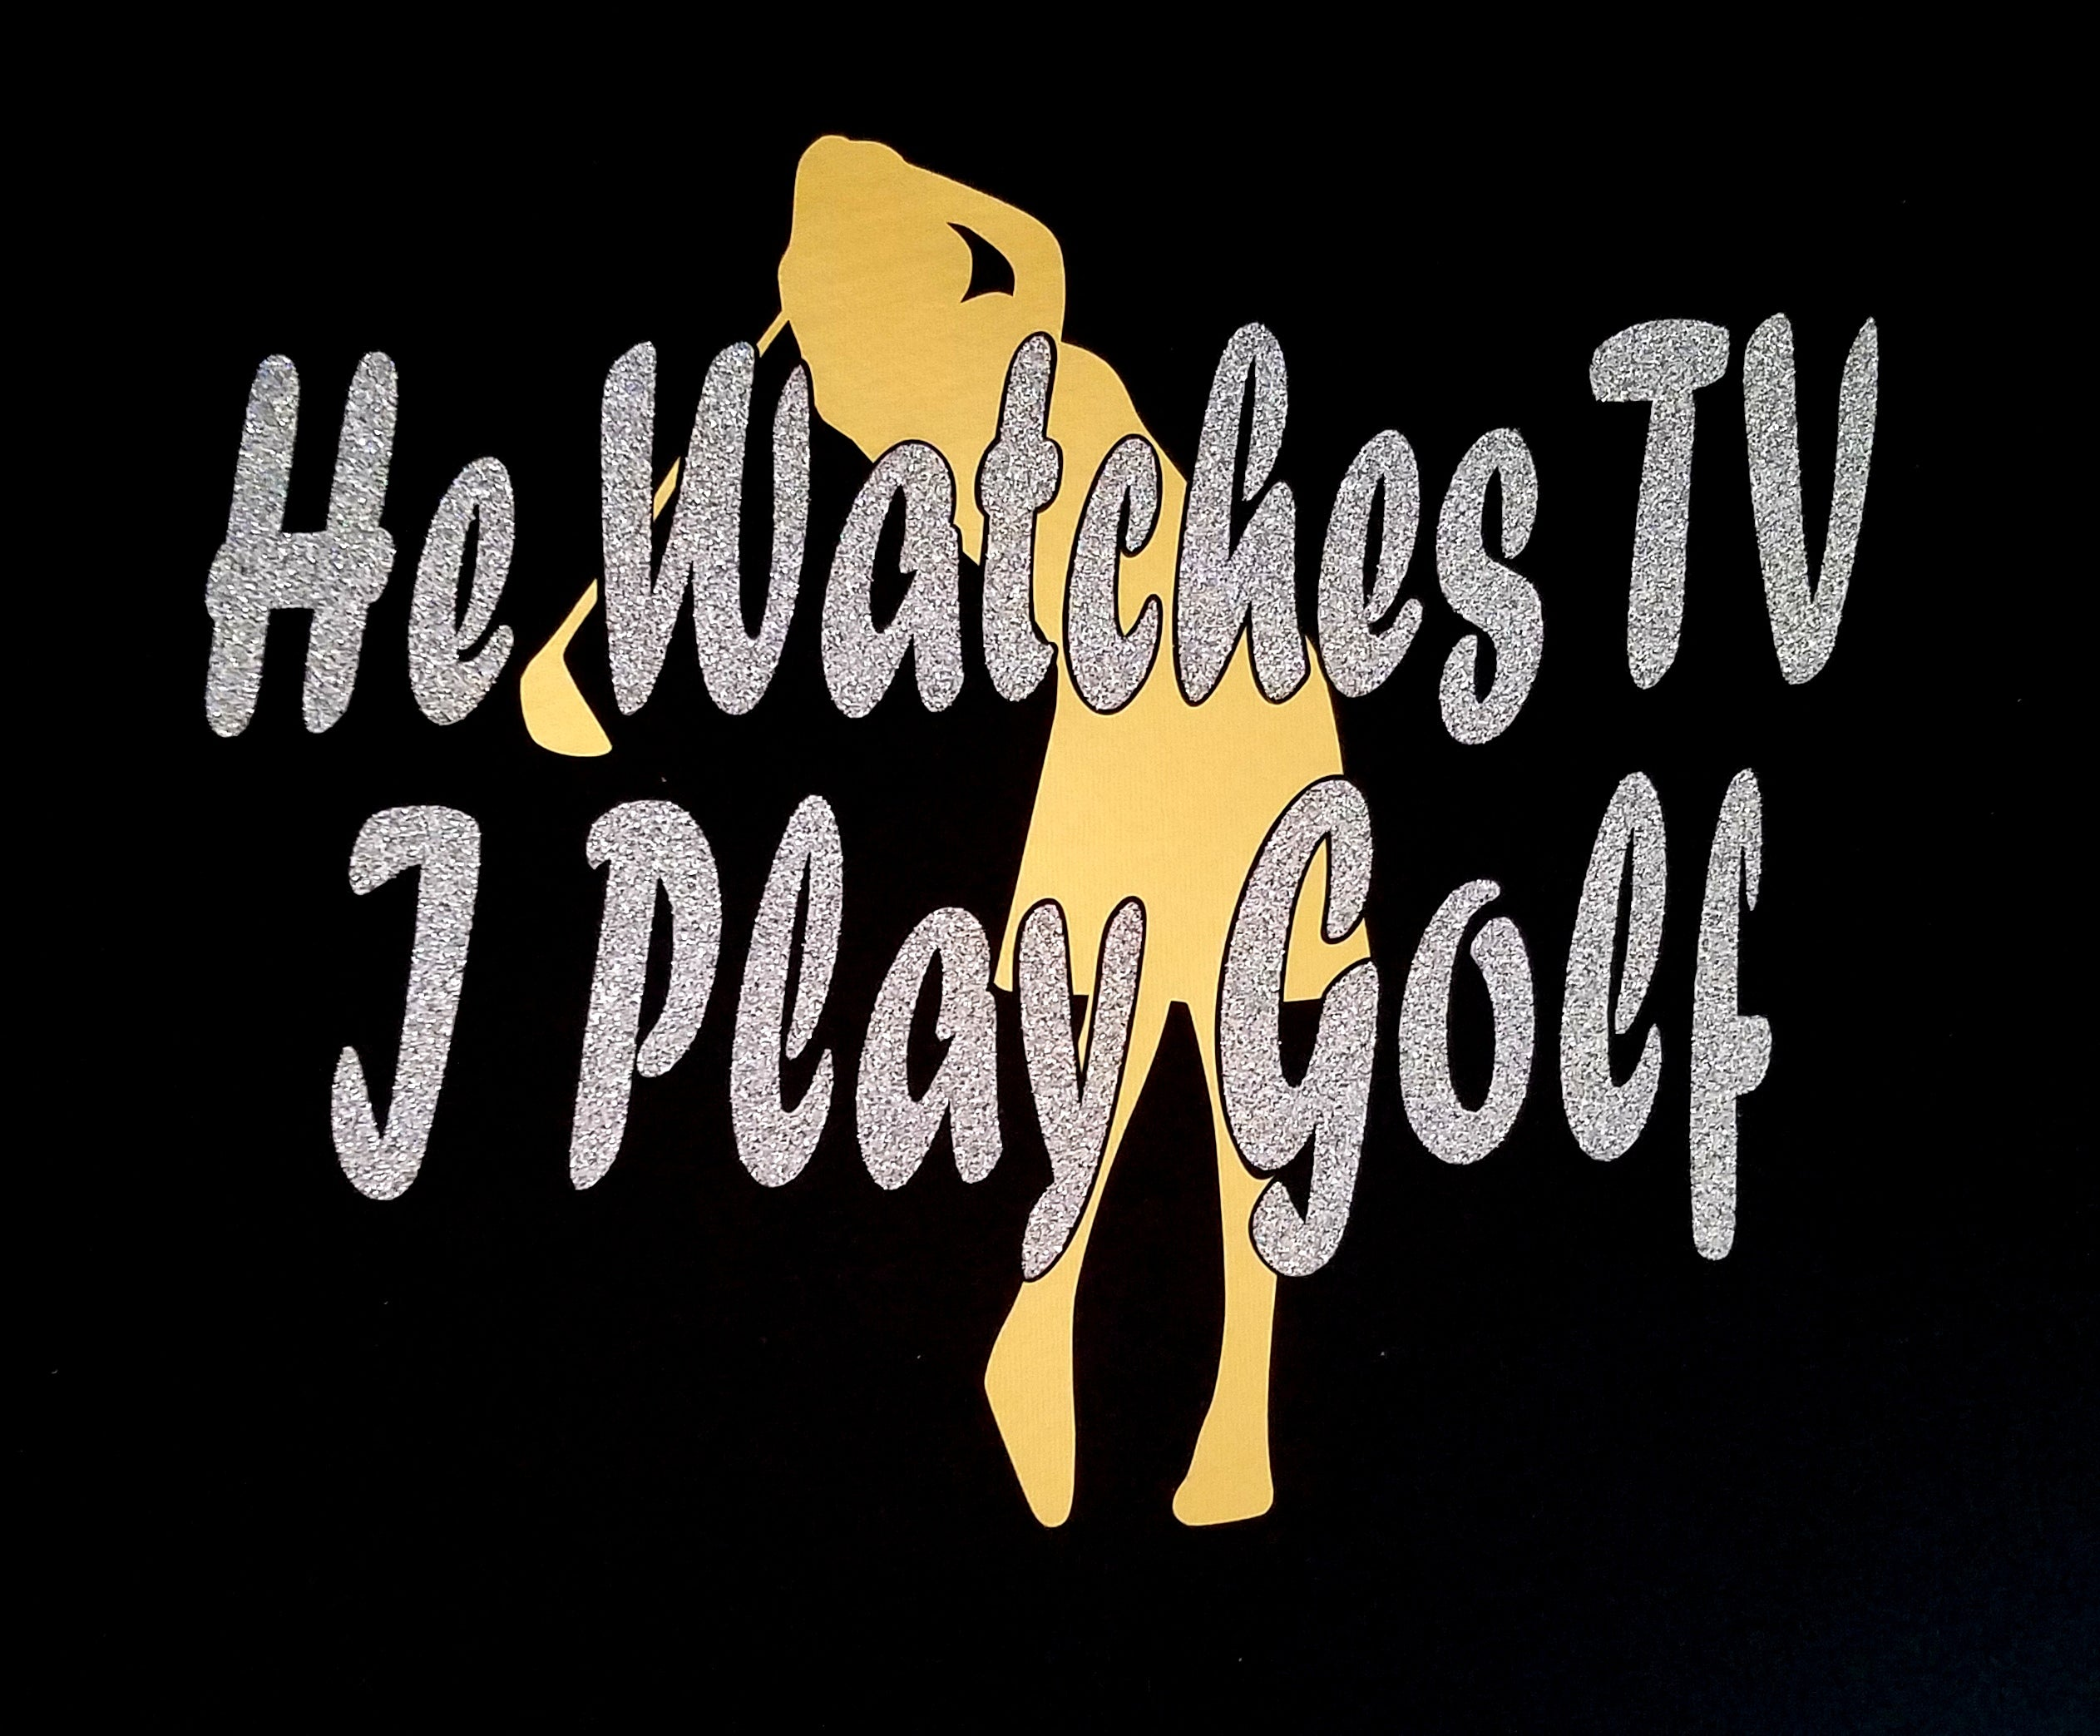 He Watches TV I Play Golf Women's T-Shirts (STYLE #2)